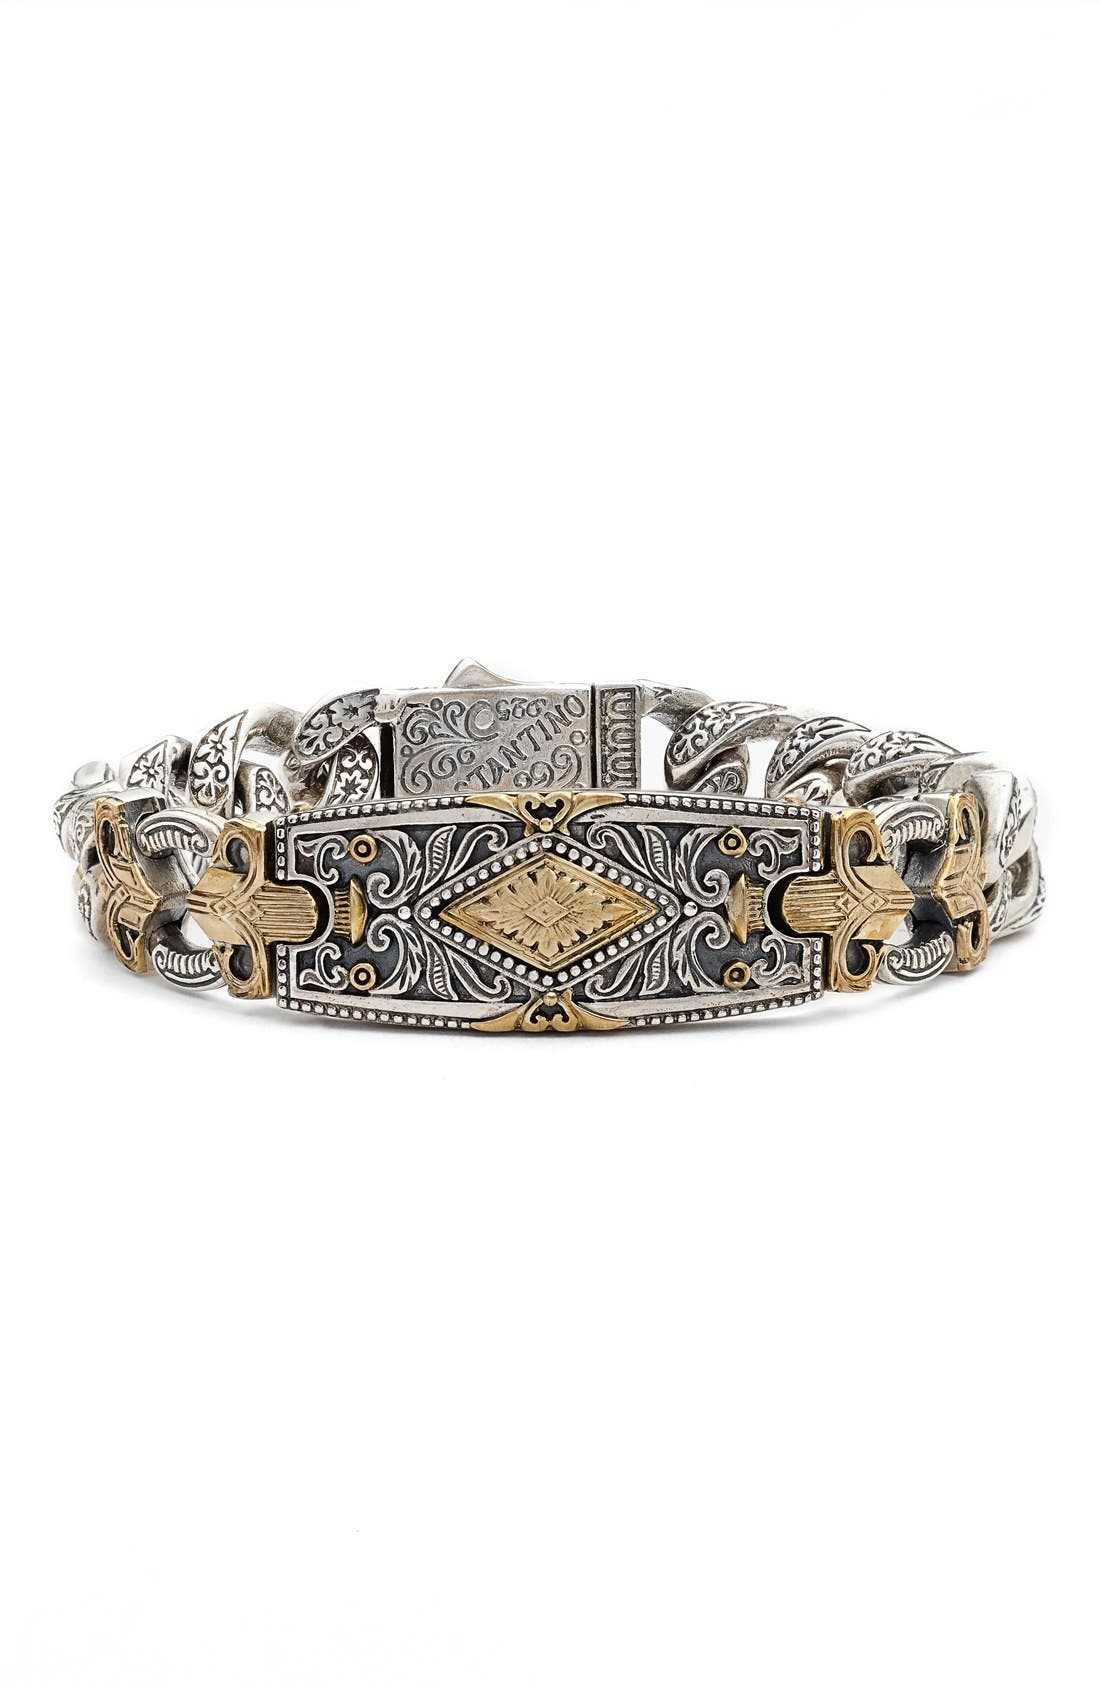 Alternate Image 1 Selected - Konstantino Myrmidones Fleur de Lis Bracelet